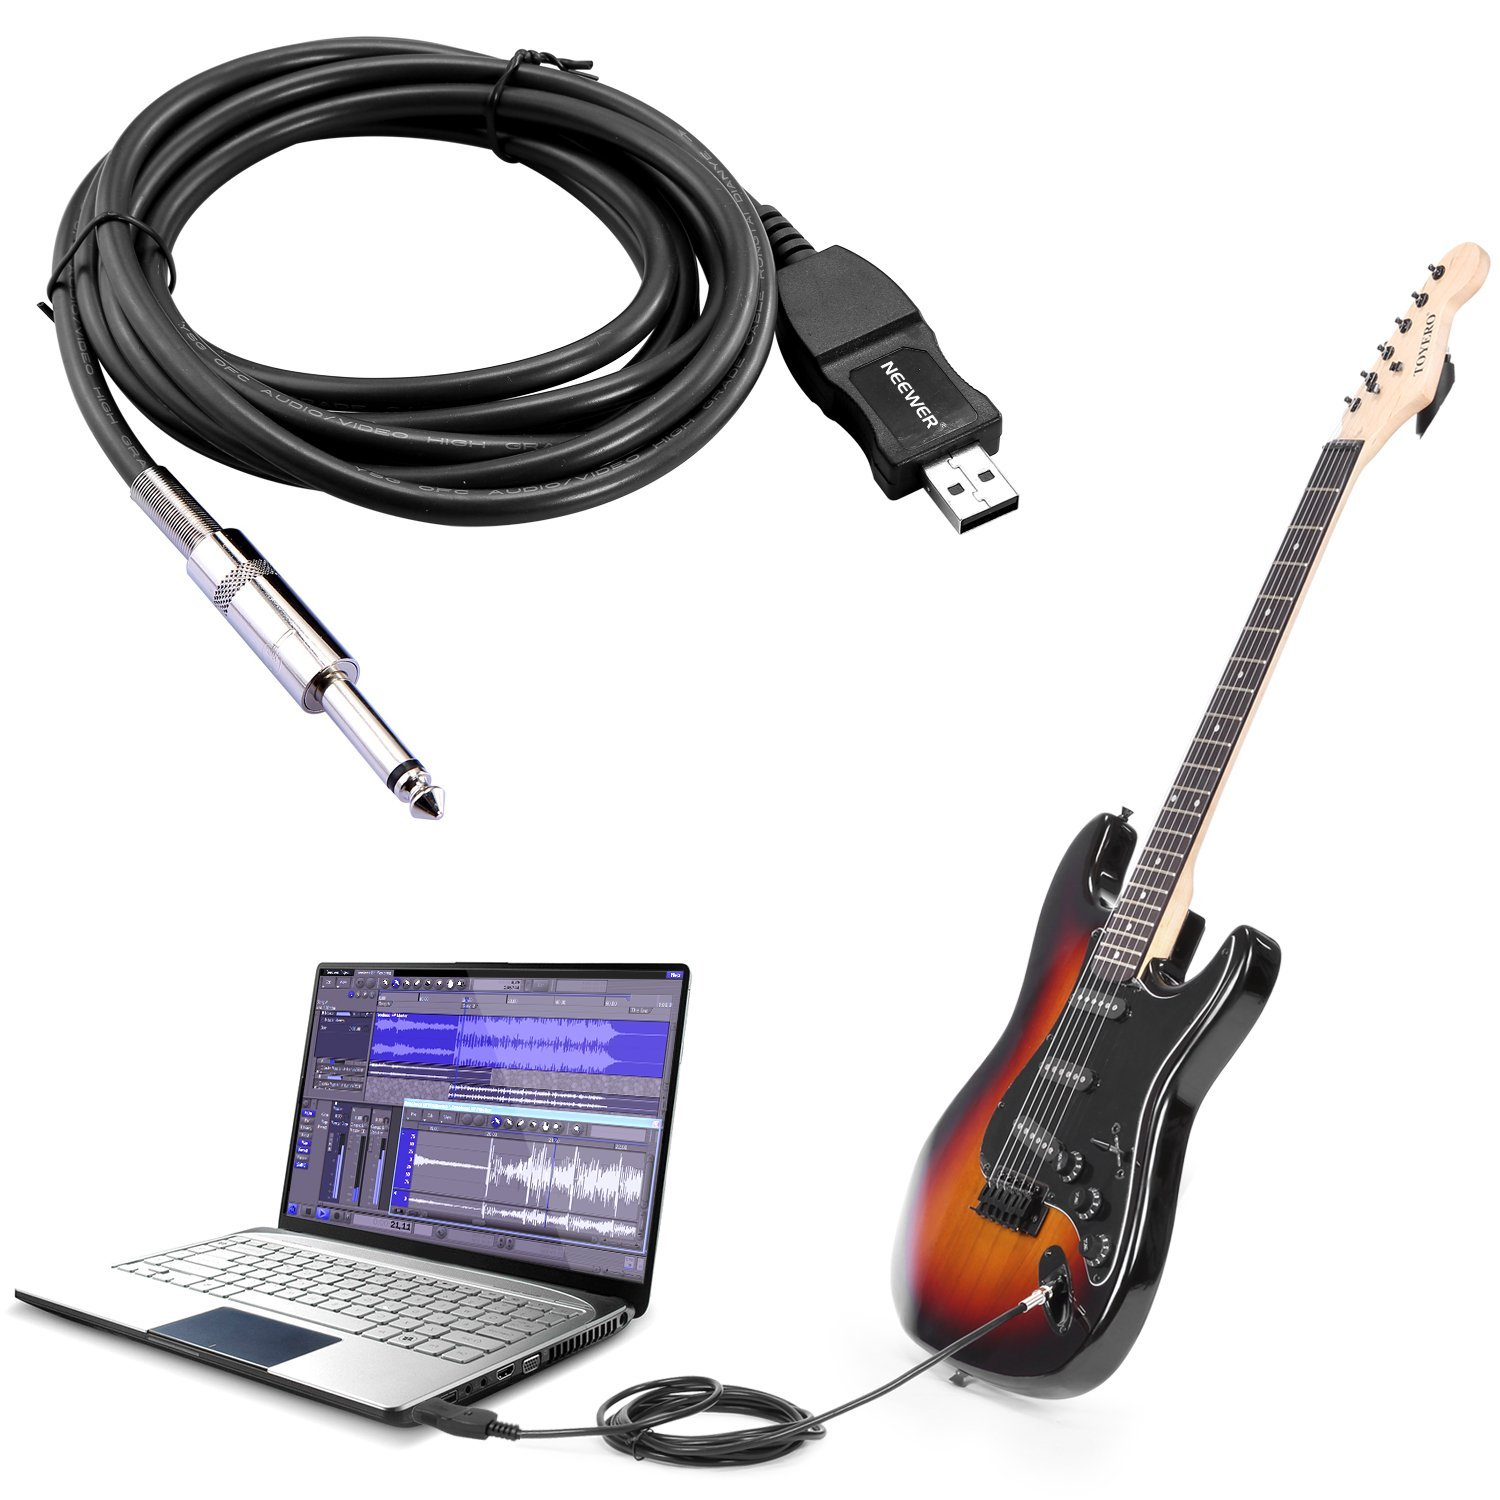 Neewer® Guitarra Bass a USB Cable de enlace de adaptador para PC/Mac Grabación: Amazon.es: Instrumentos musicales